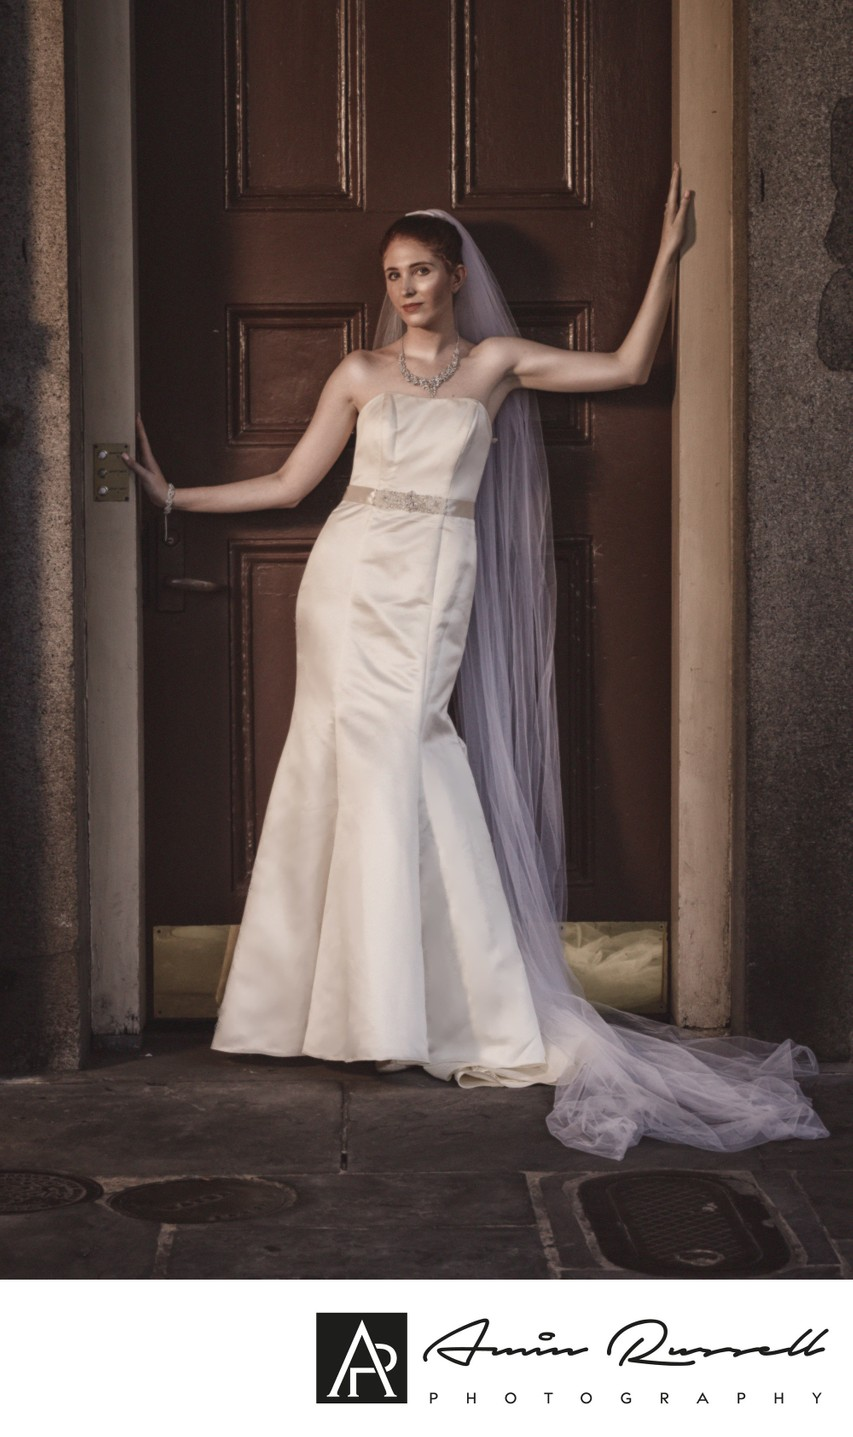 Just a bride and a French Quarter Door